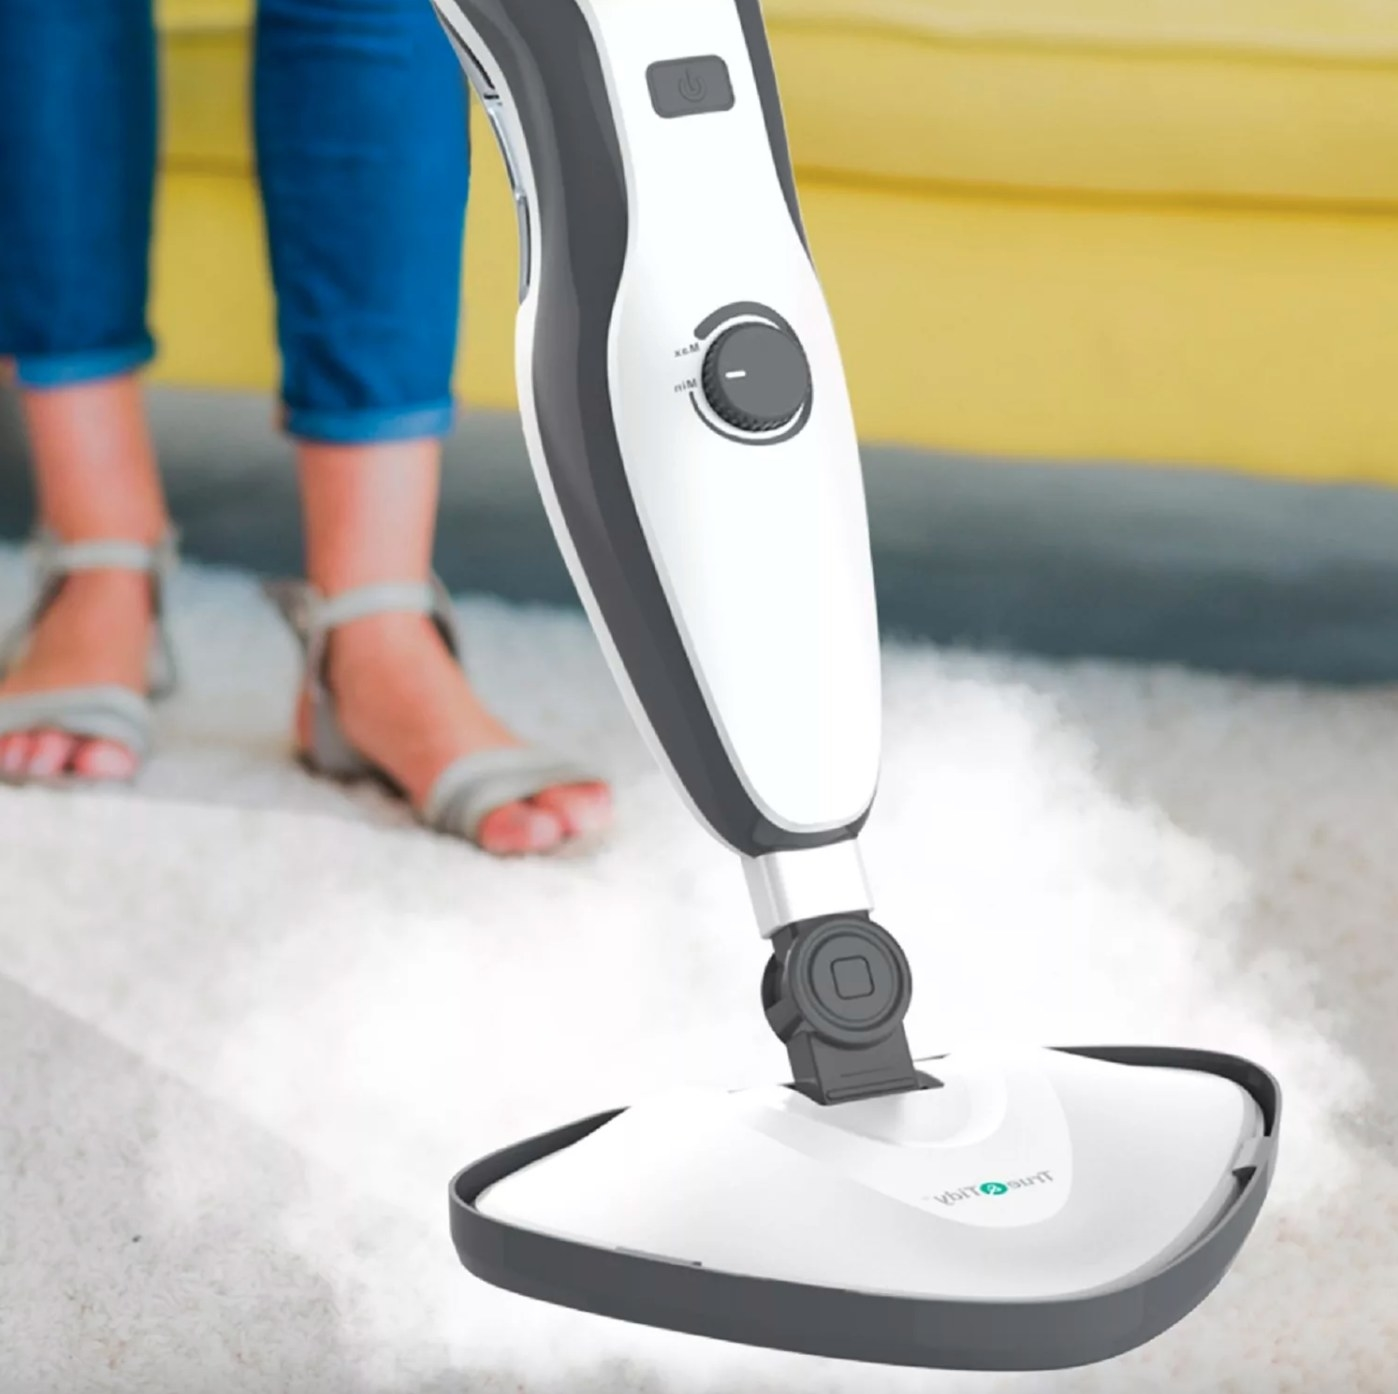 The heavy-duty steam mop in white with black detailing being used by a model on a rug